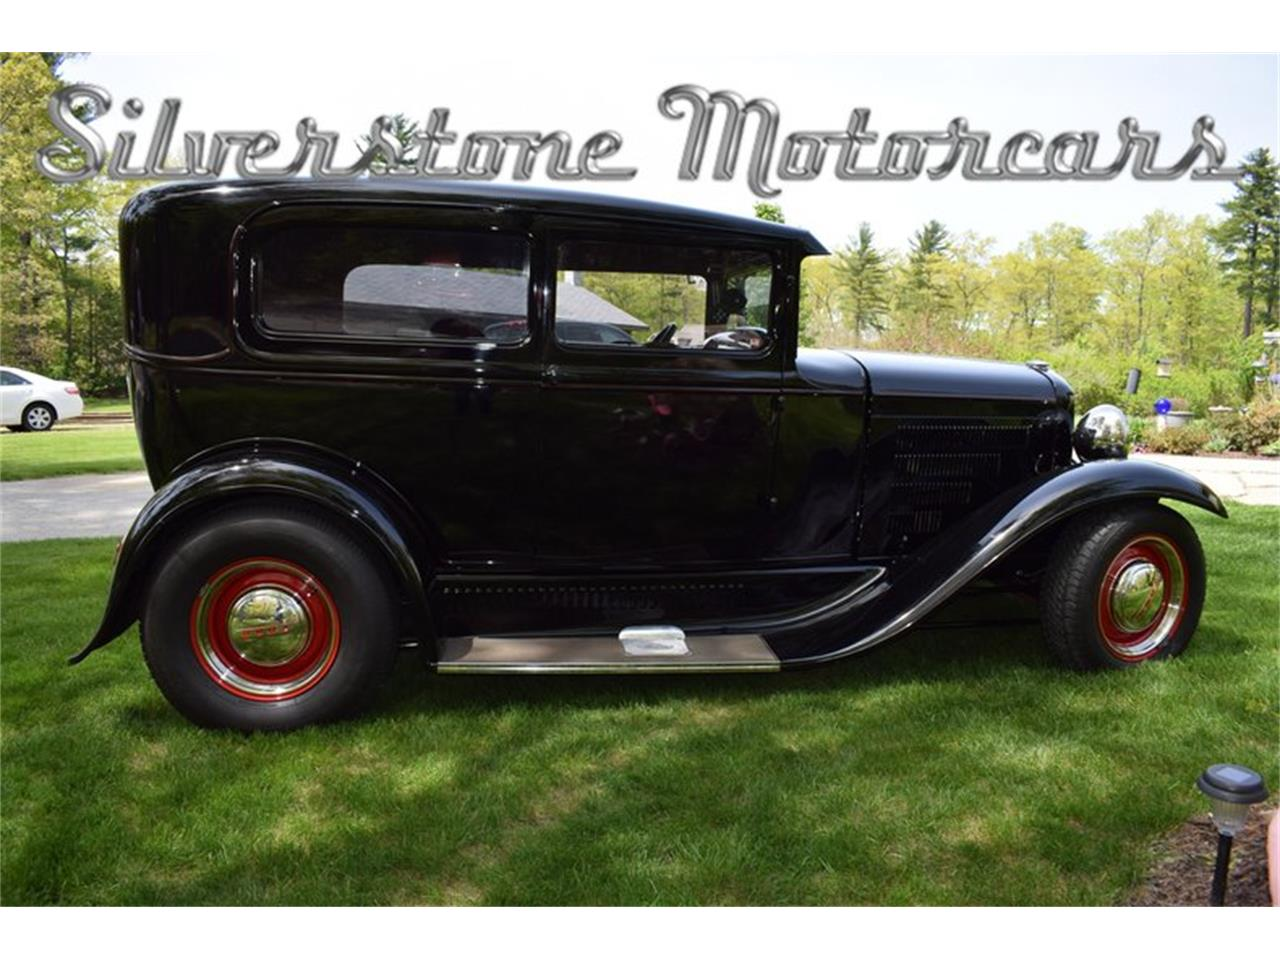 Large Picture of '31 Tudor located in Massachusetts - $32,500.00 Offered by Silverstone Motorcars - L5CC